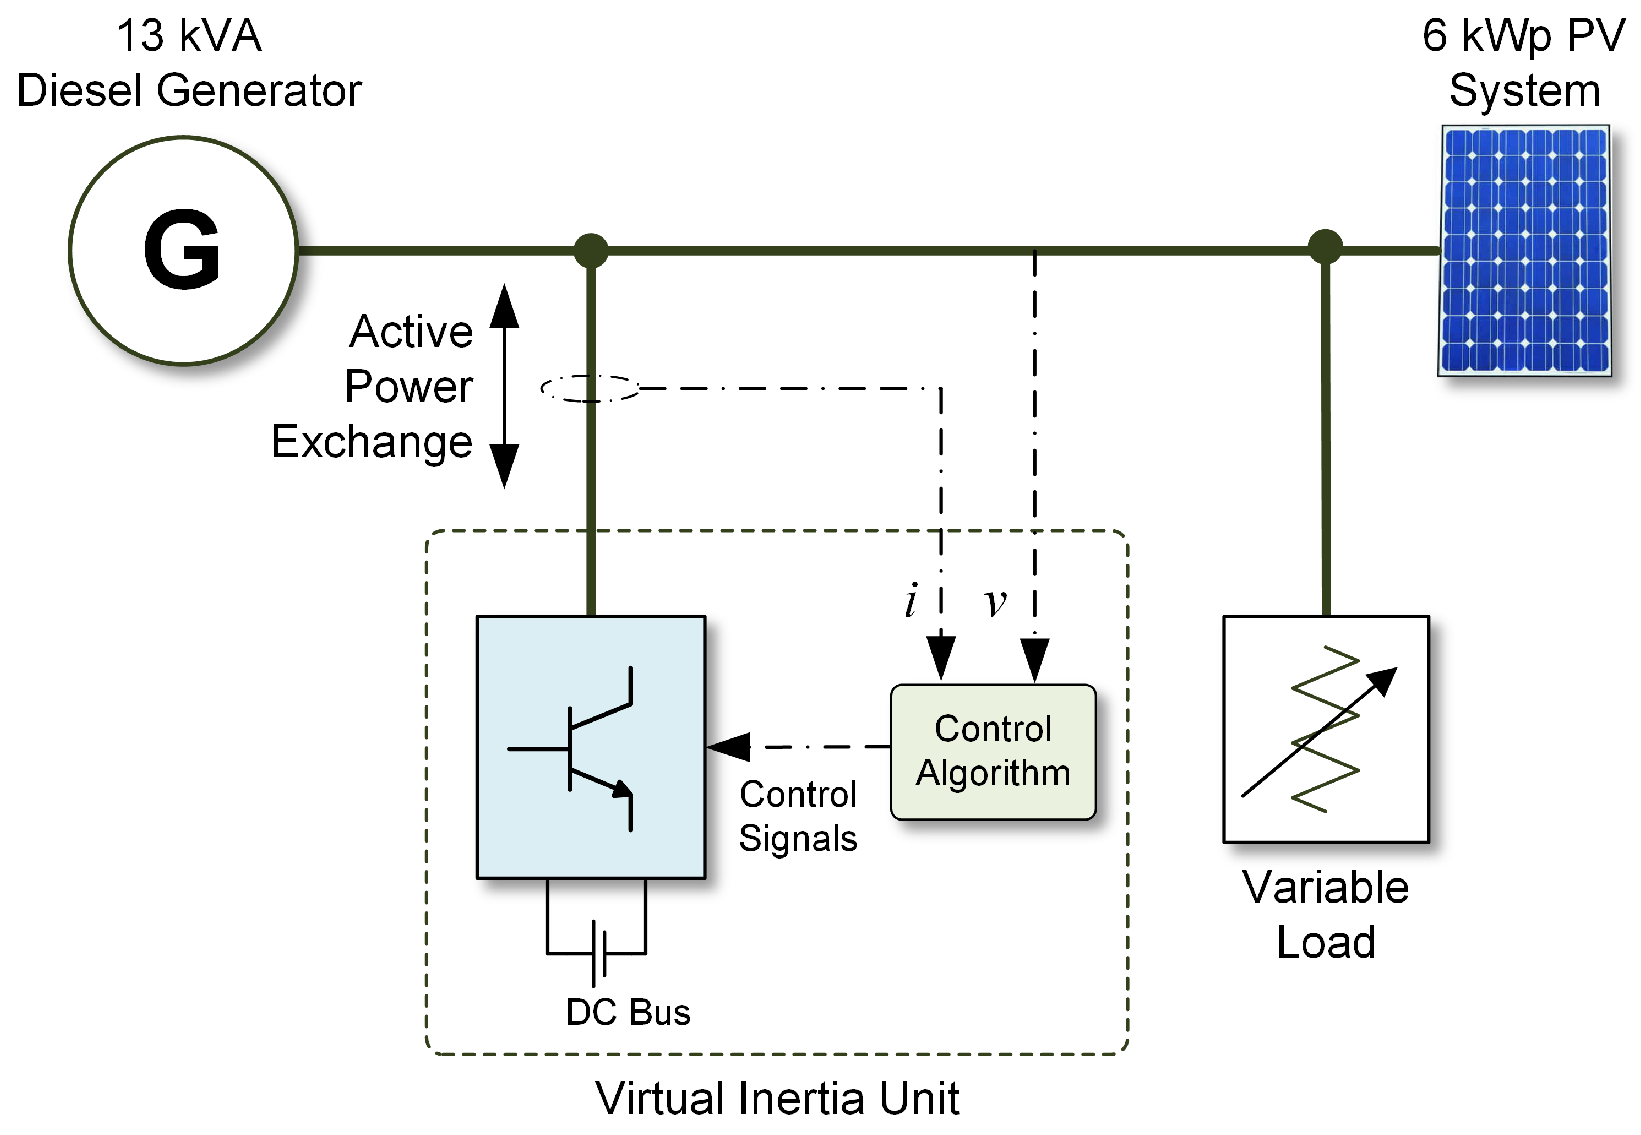 Applied Sciences Free Full Text Virtual Inertia Current Trends Control Panel Wiring Diagram In This Diesel Generator Applsci 07 00654 G011 Figure 11 Schematic